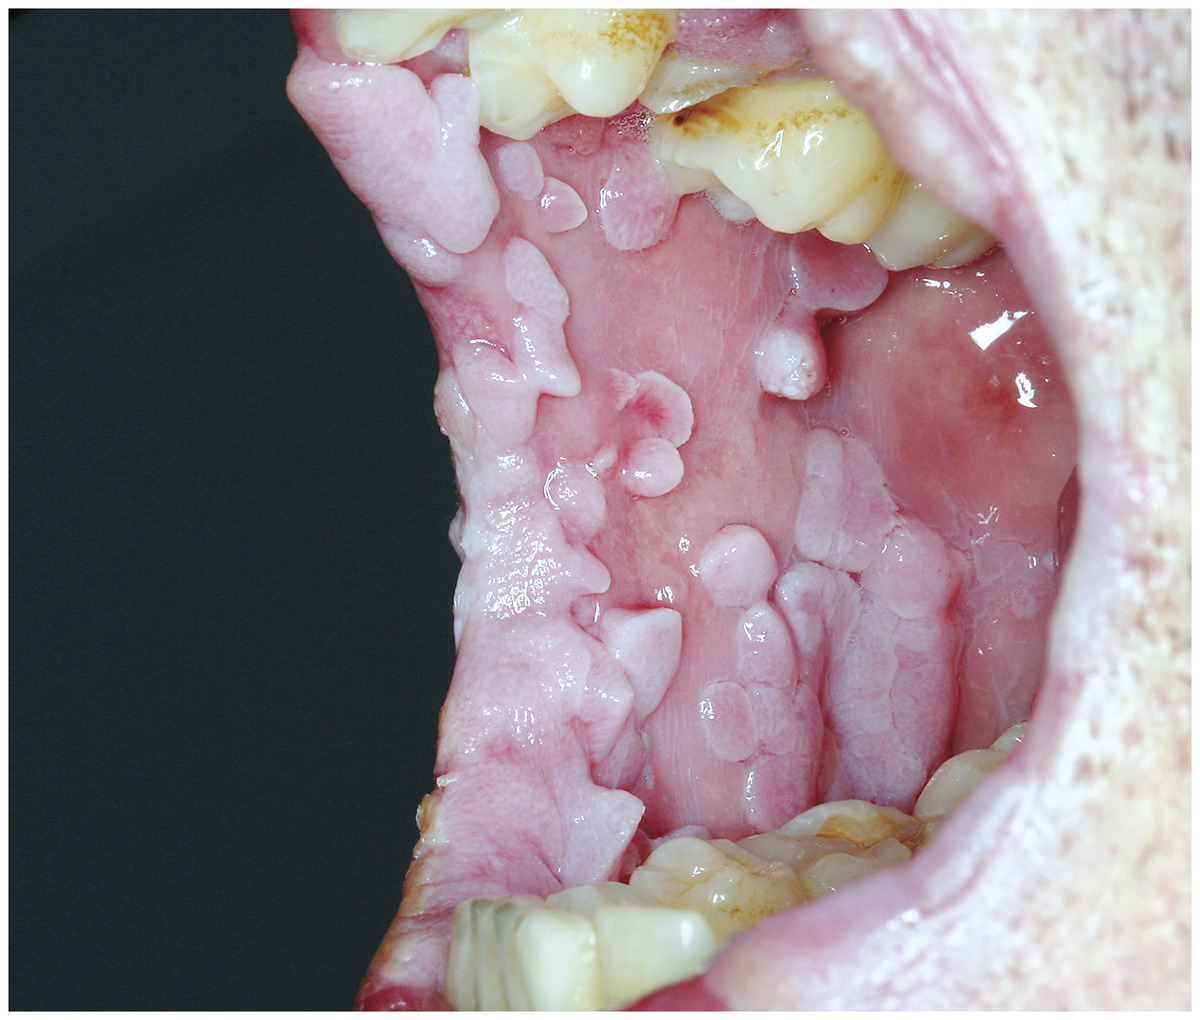 hpv mouth throat